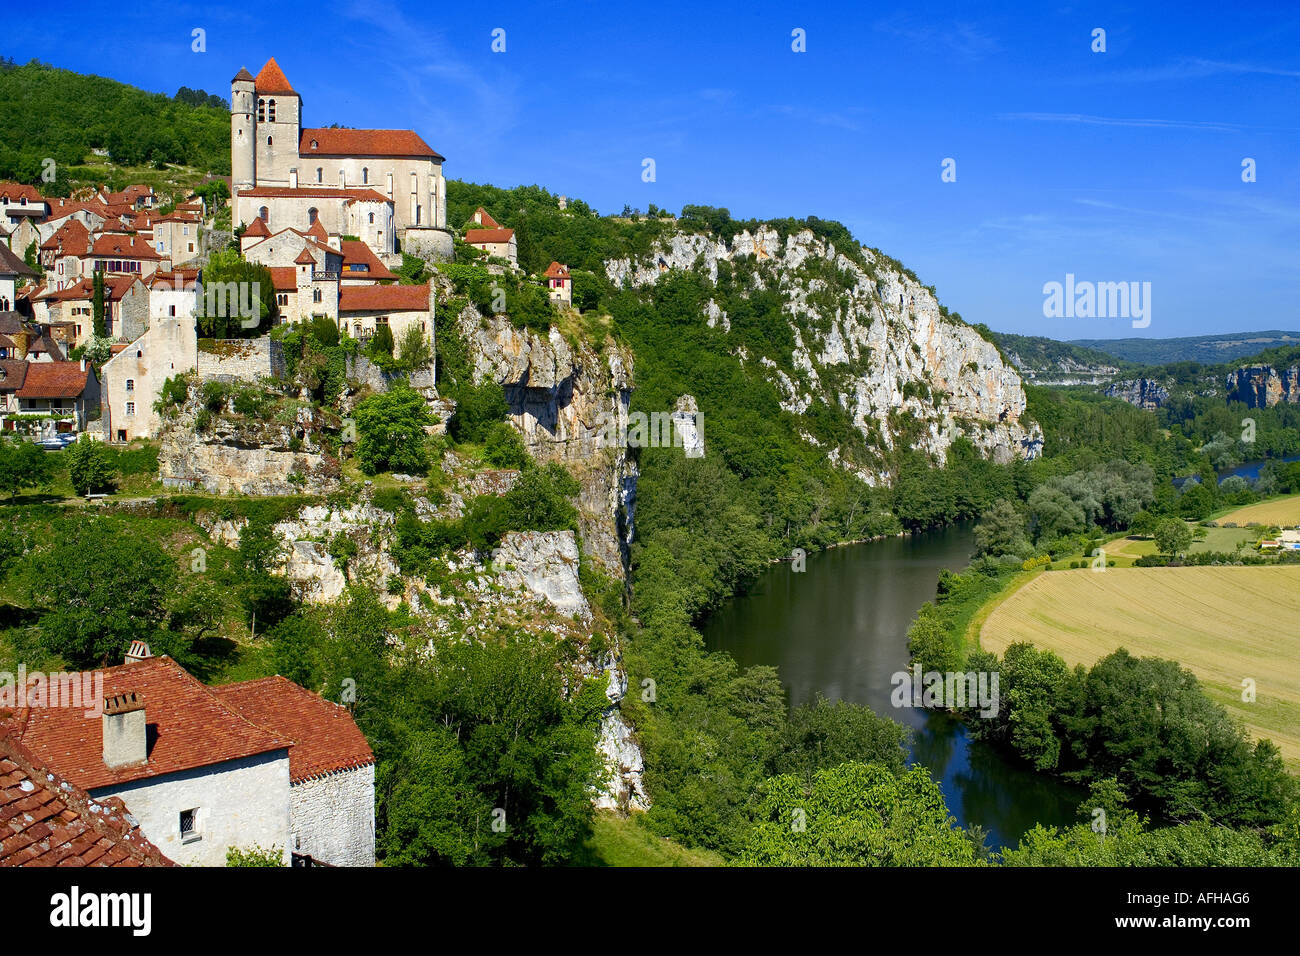 St Cirq Lapopie in Lot Valley France - Stock Image